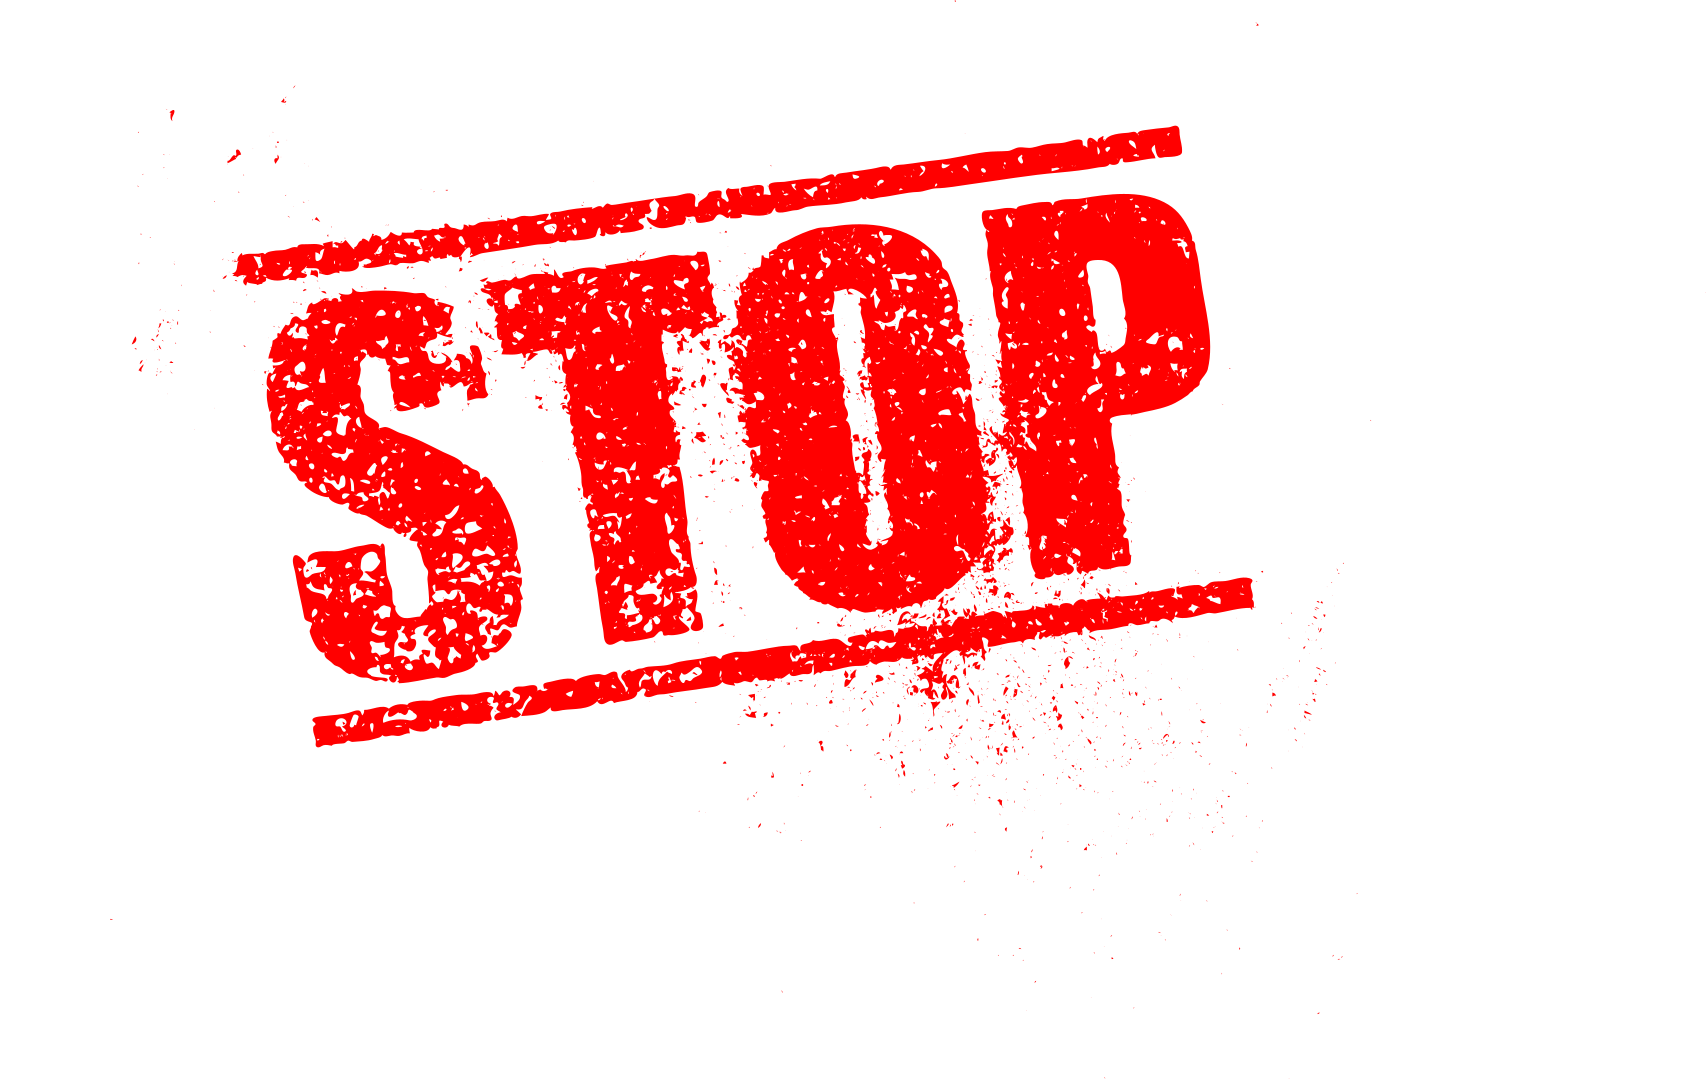 stop-stamp-4.png